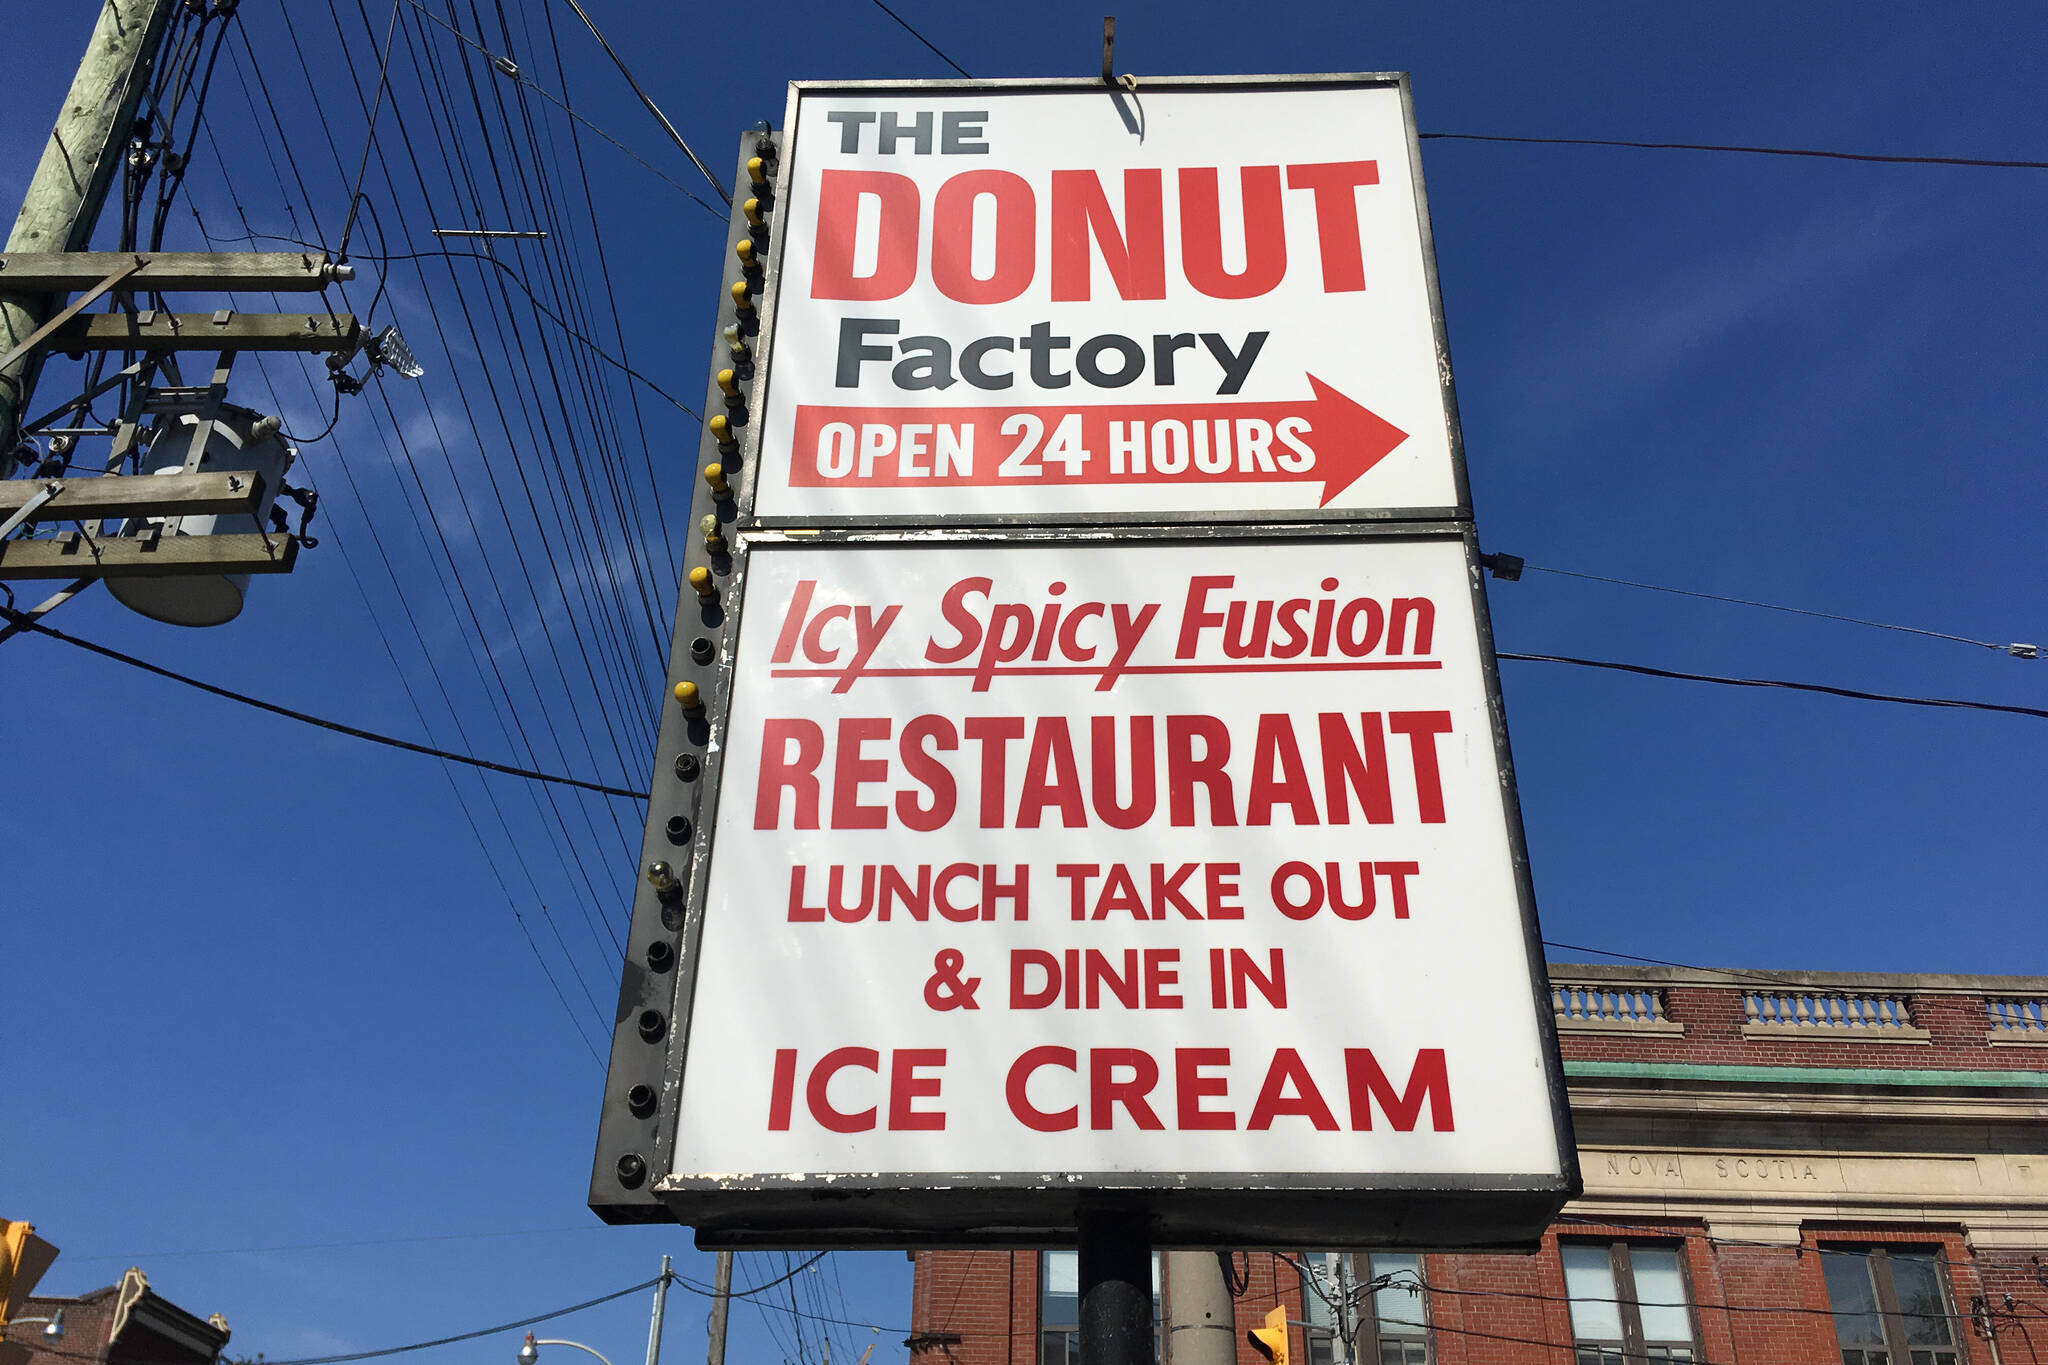 icy spicy fusion closed toronto